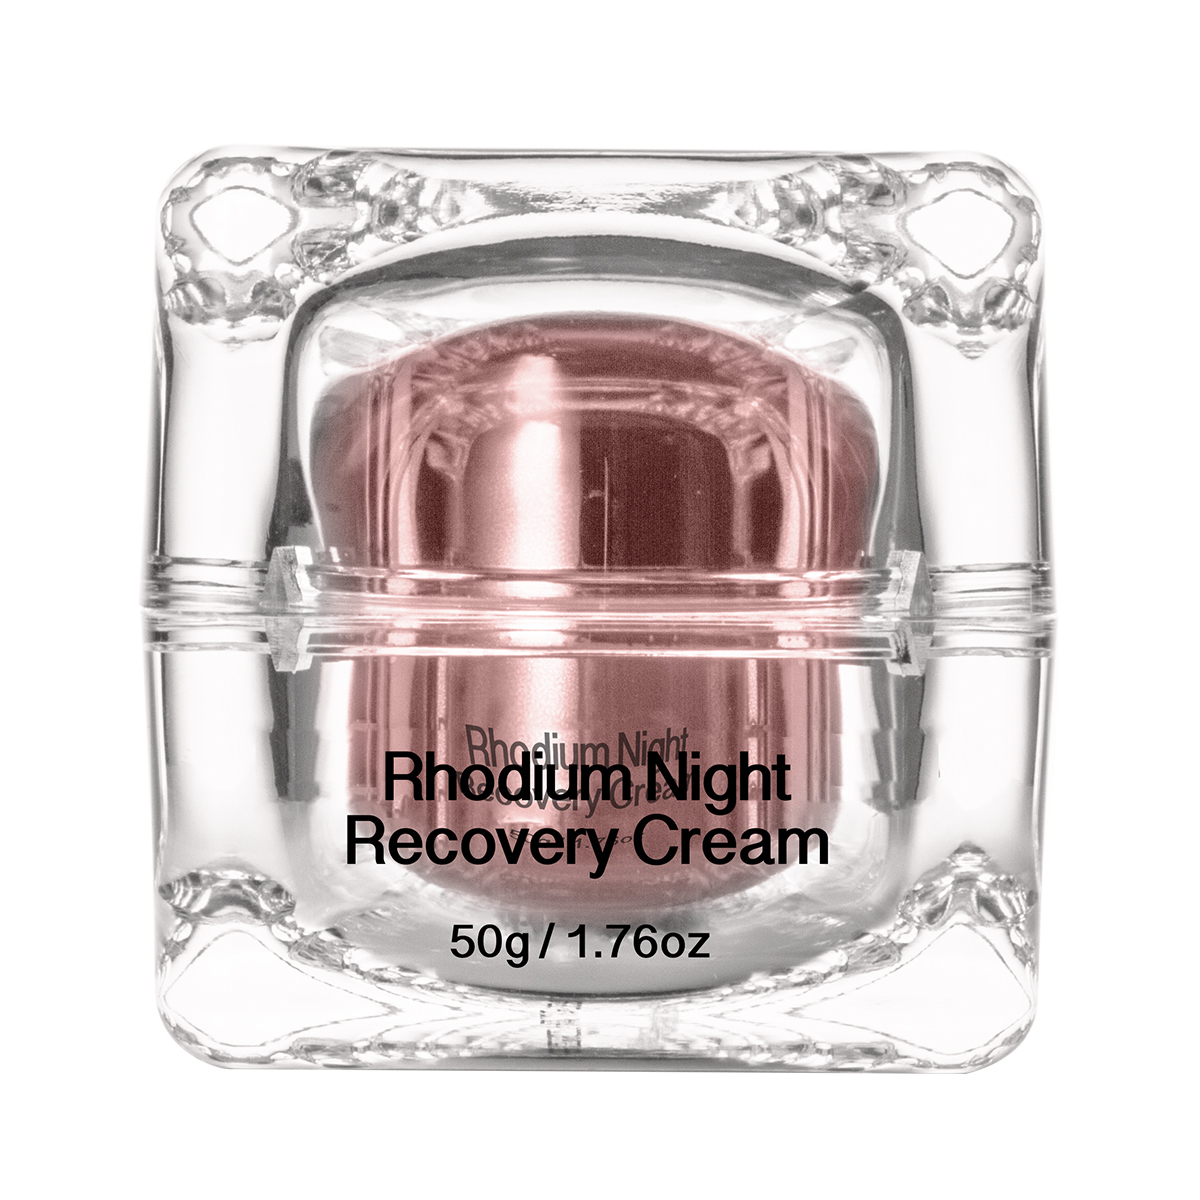 Rhodium Night Recovery Cream